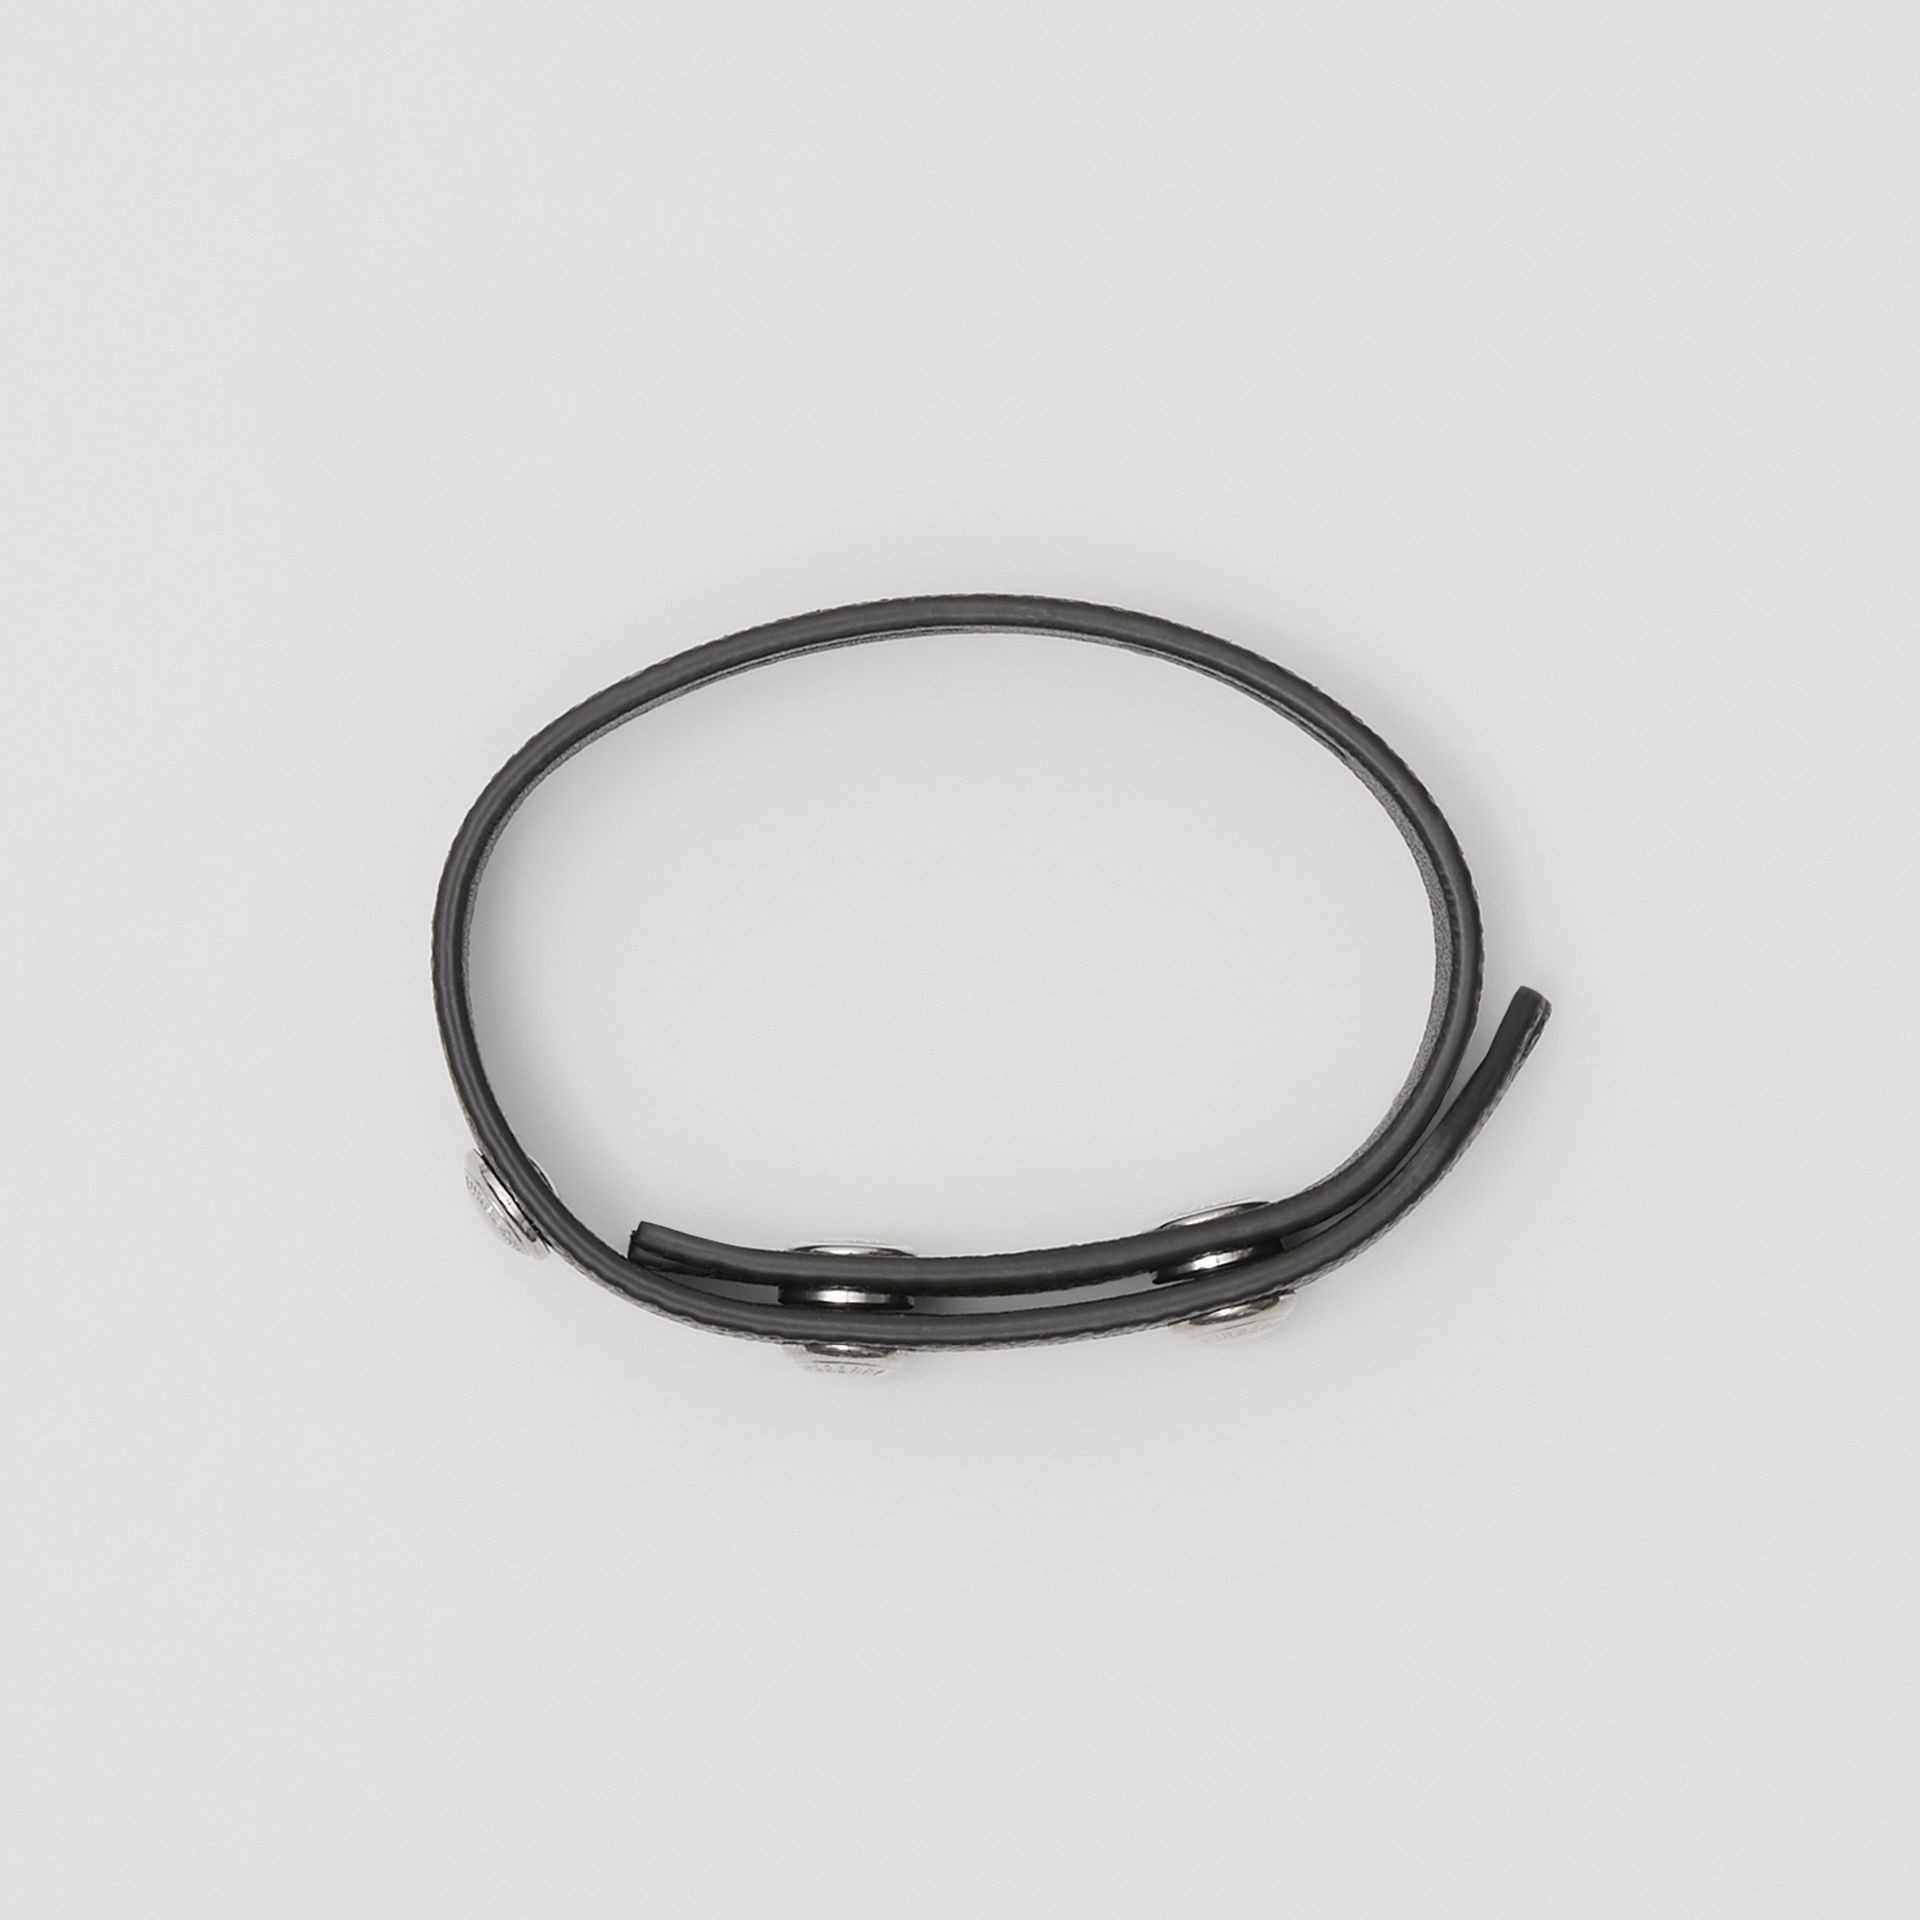 Triple Stud Grainy Leather Bracelet in Black - Men | Burberry - gallery image 2